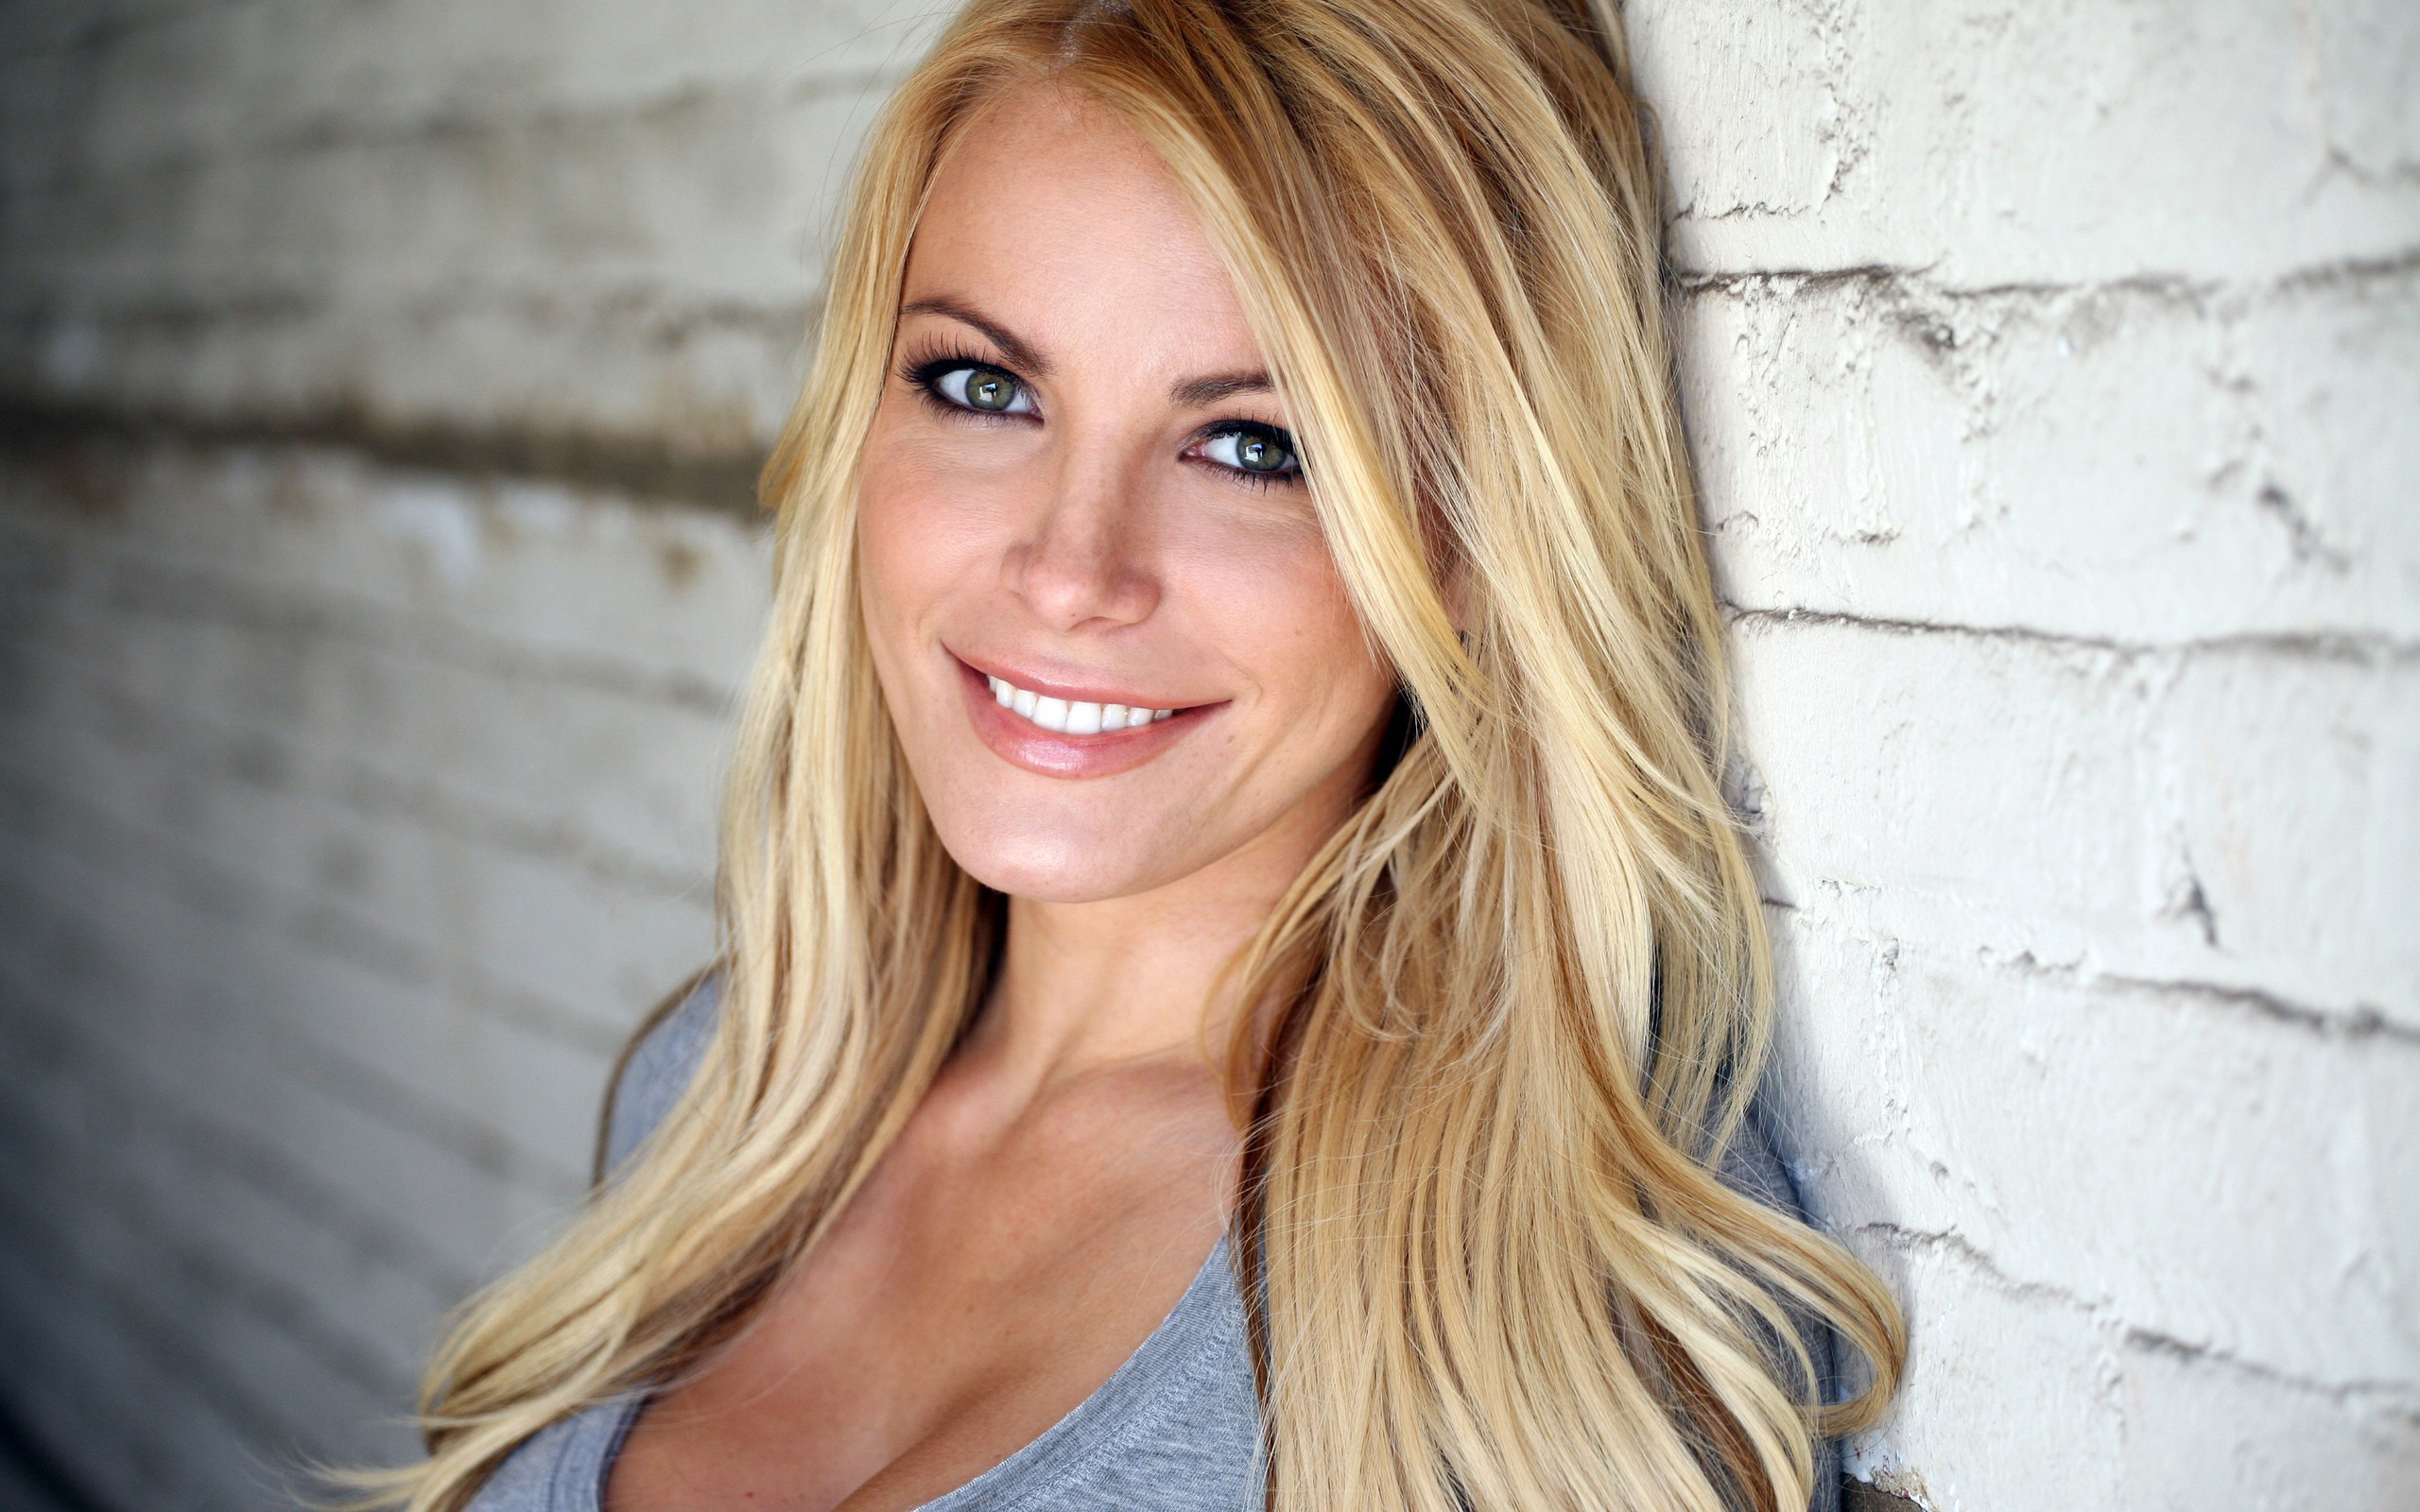 Pictures Of Crystal Harris